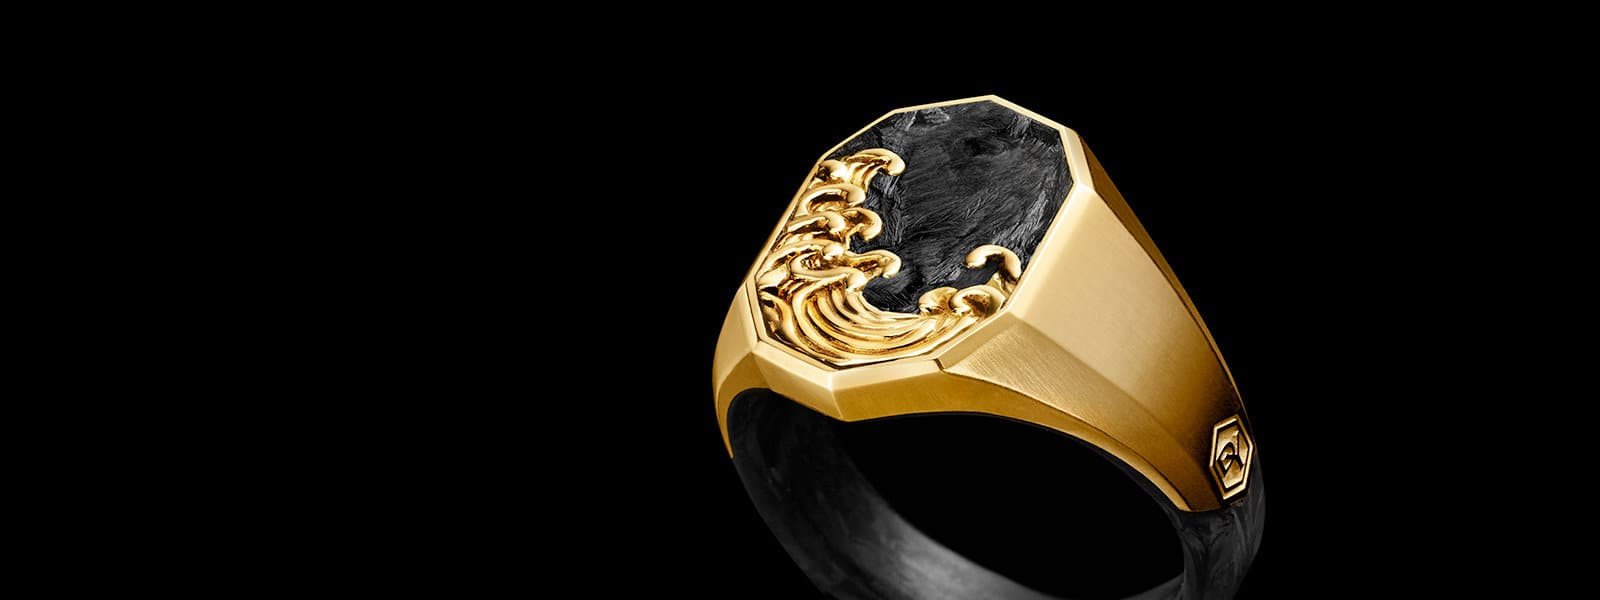 A David Yurman men's Waves signet ring in 18K yellow gold with forged carbon on a dark reflective surface.